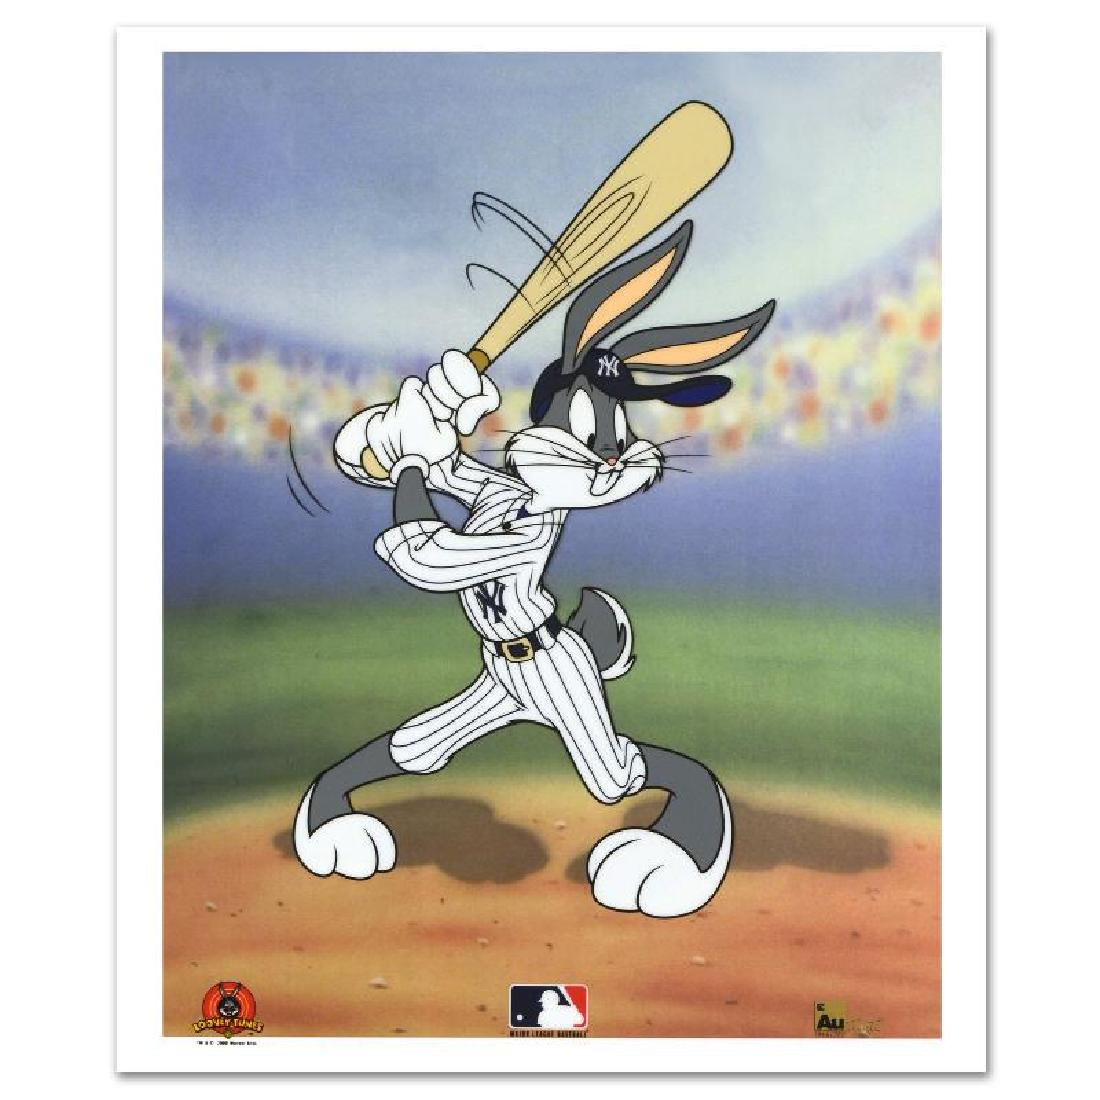 Bugs Bunny at Bat for the Yankees Limited Edition